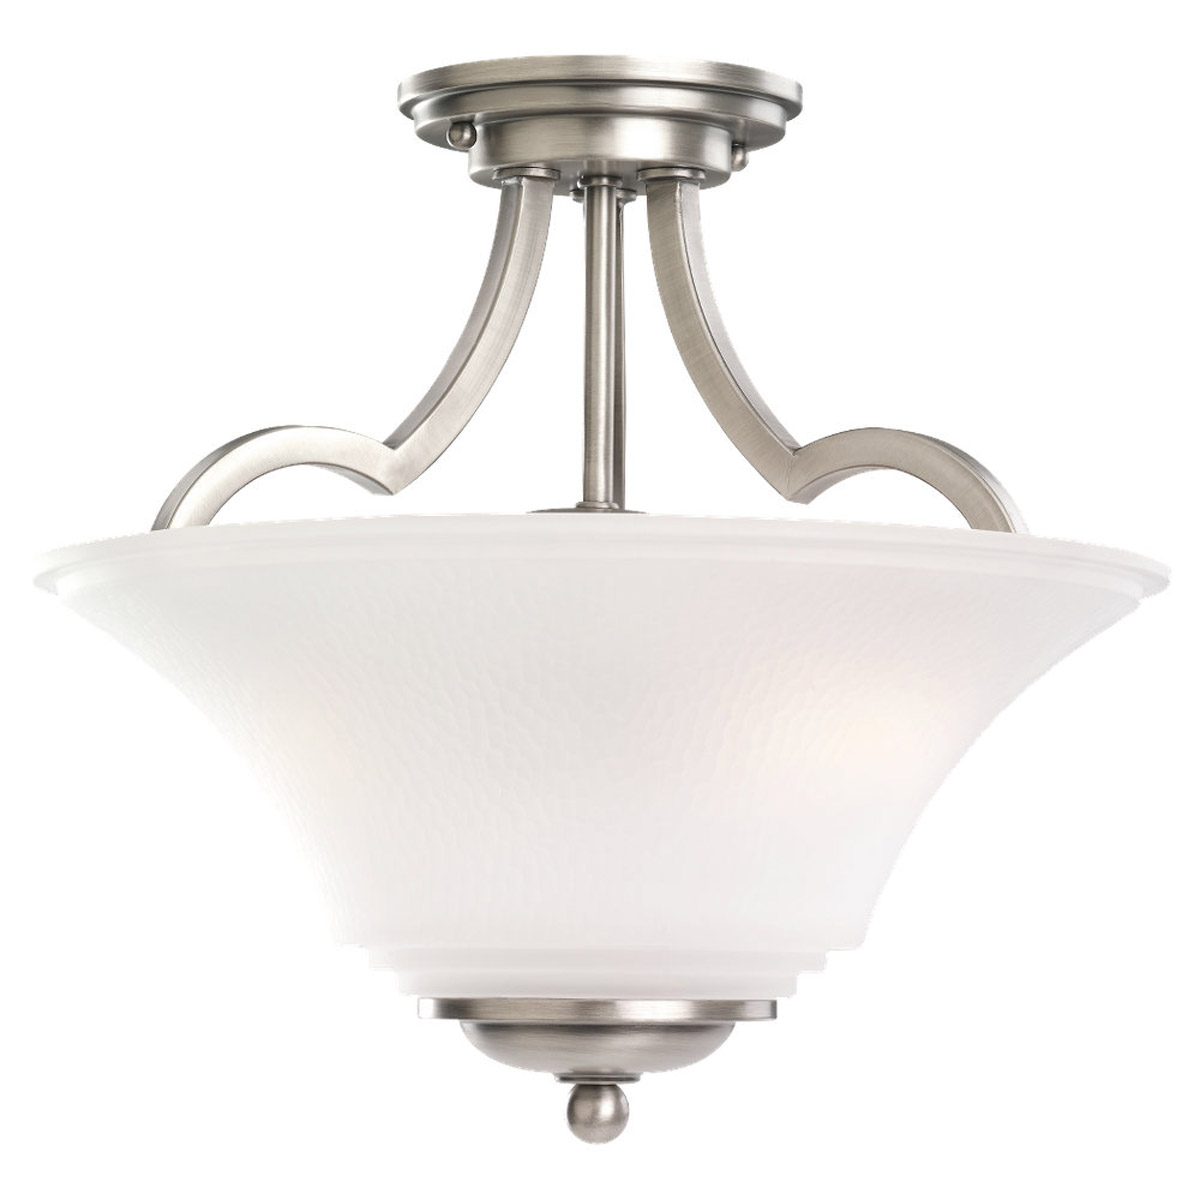 Sea Gull Somerton 2 Light Semi-Flush Convertible Pendant in Antique Brushed Nickel 77375BLE-965 photo